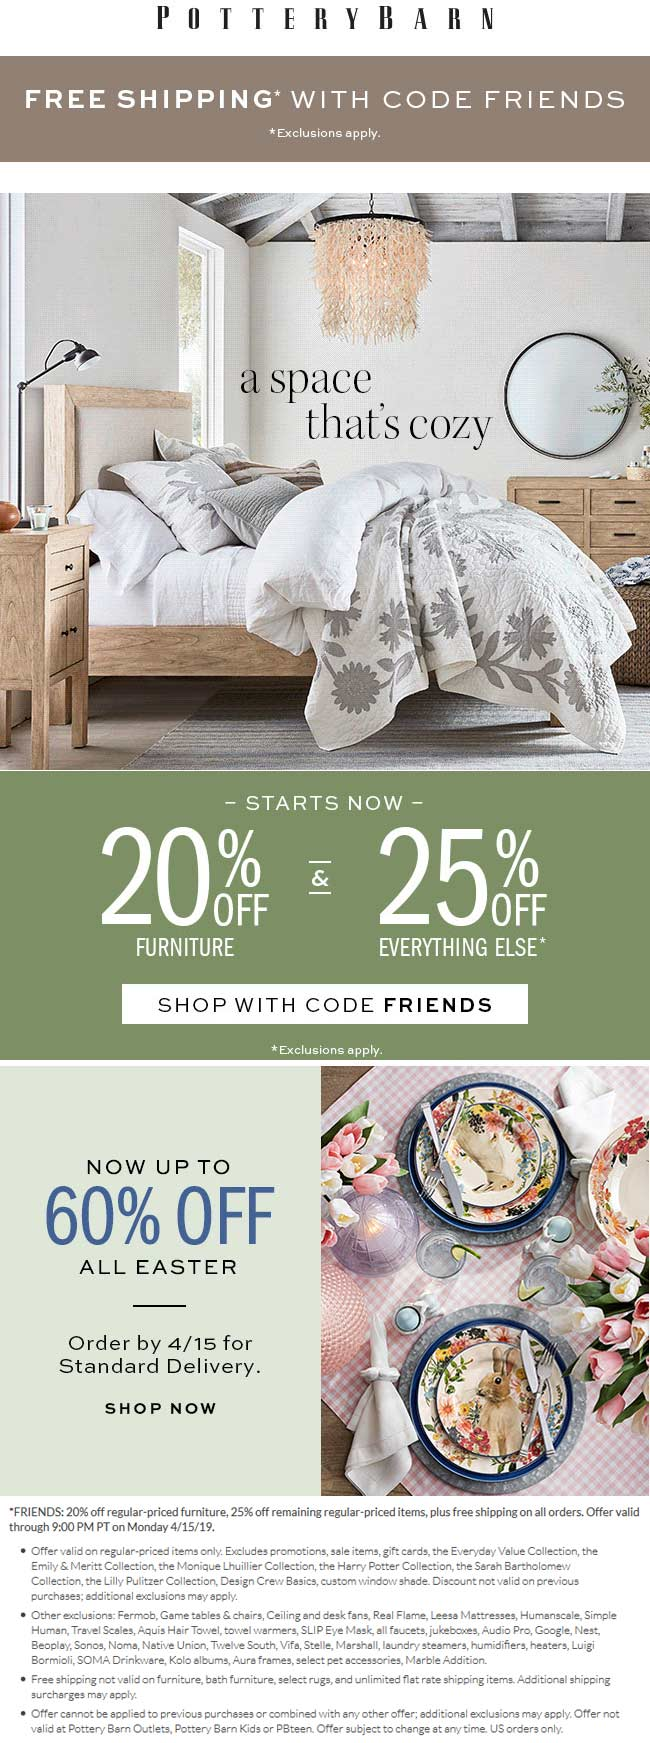 Pottery Barn Coupon May 2019 20-25% off at Pottery Barn, or online via promo code FRIENDS